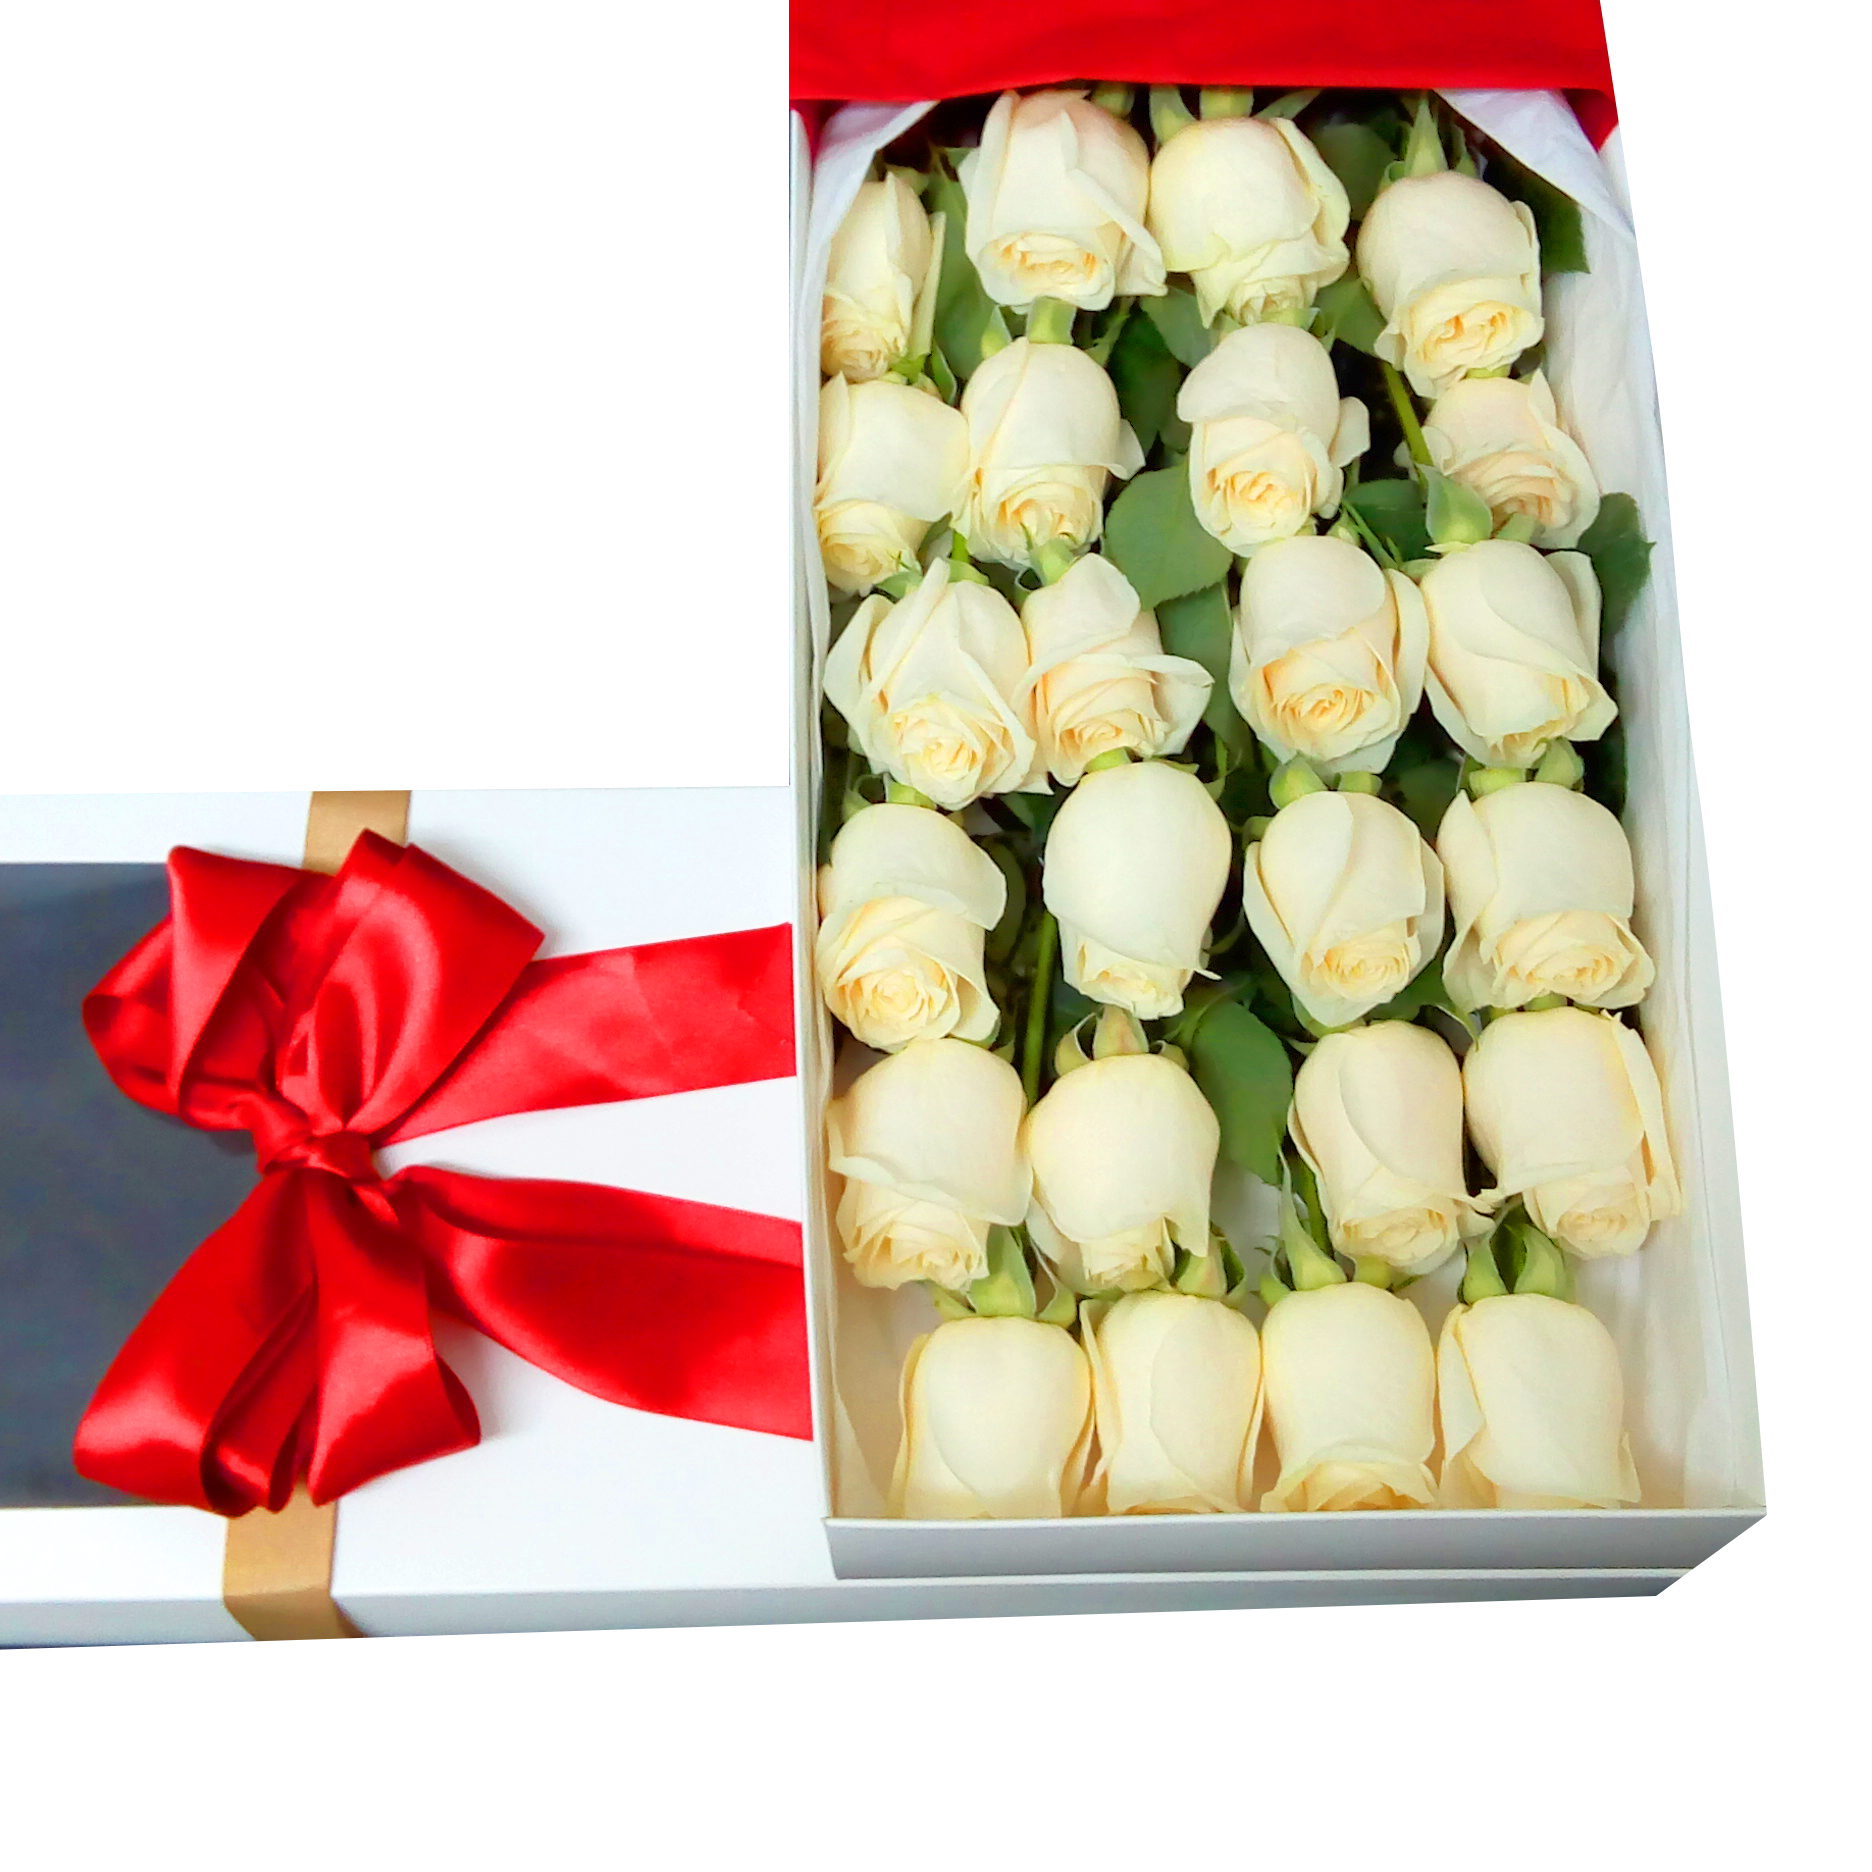 Caja de 24 bellas Rosas de color blanco